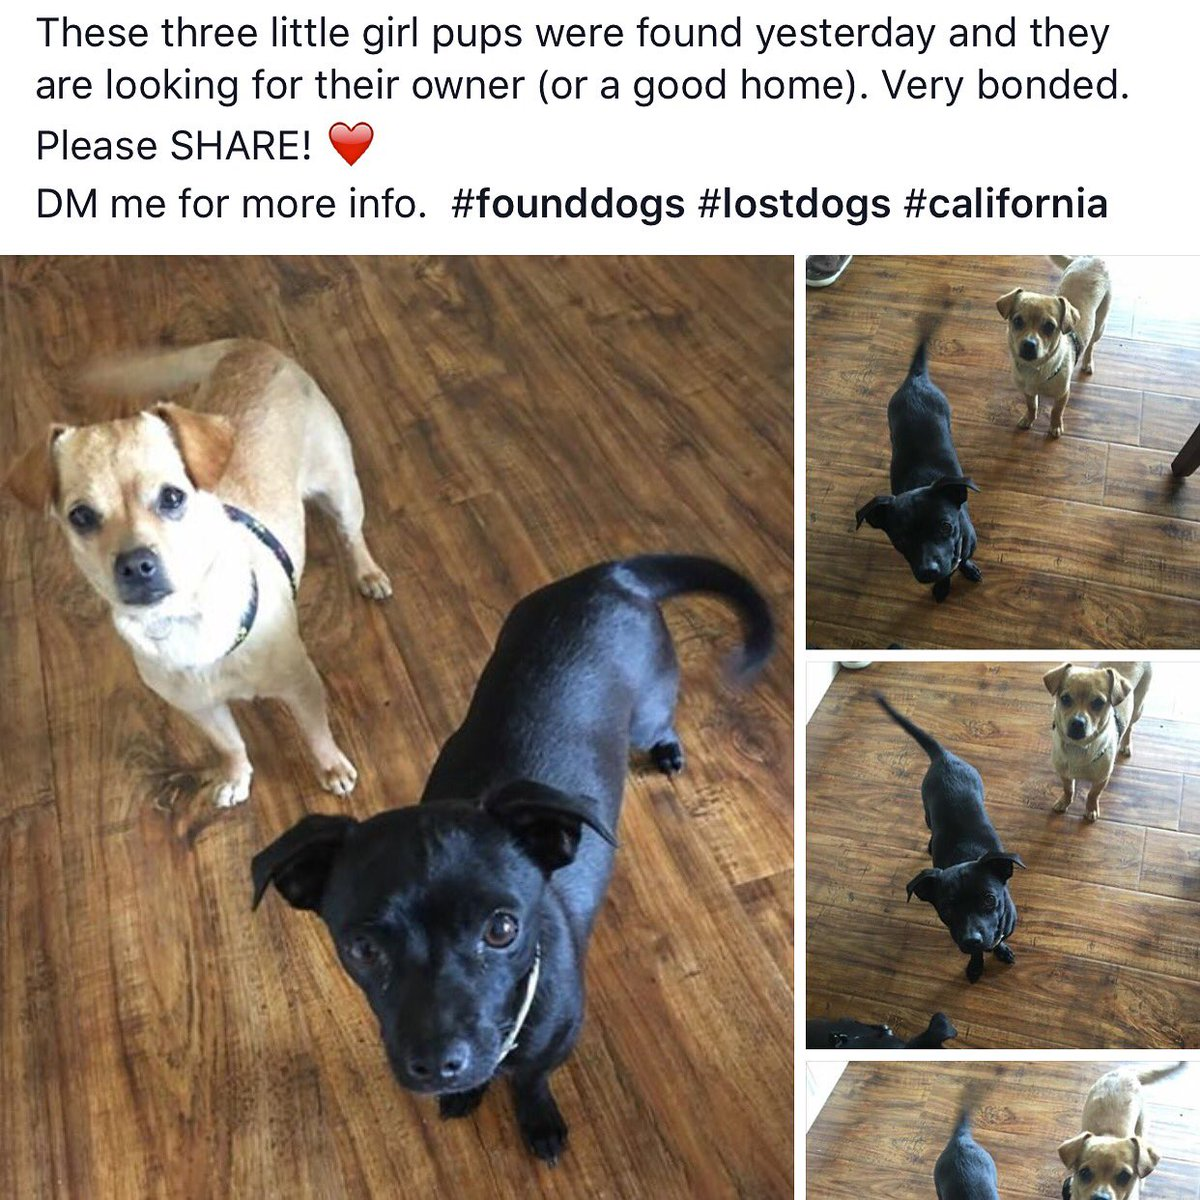 Can you help us find our owner? We got lost and ended up in the road.  Dm for more info. Please RT! #rescue https://t.co/fMeFZ18Ur5